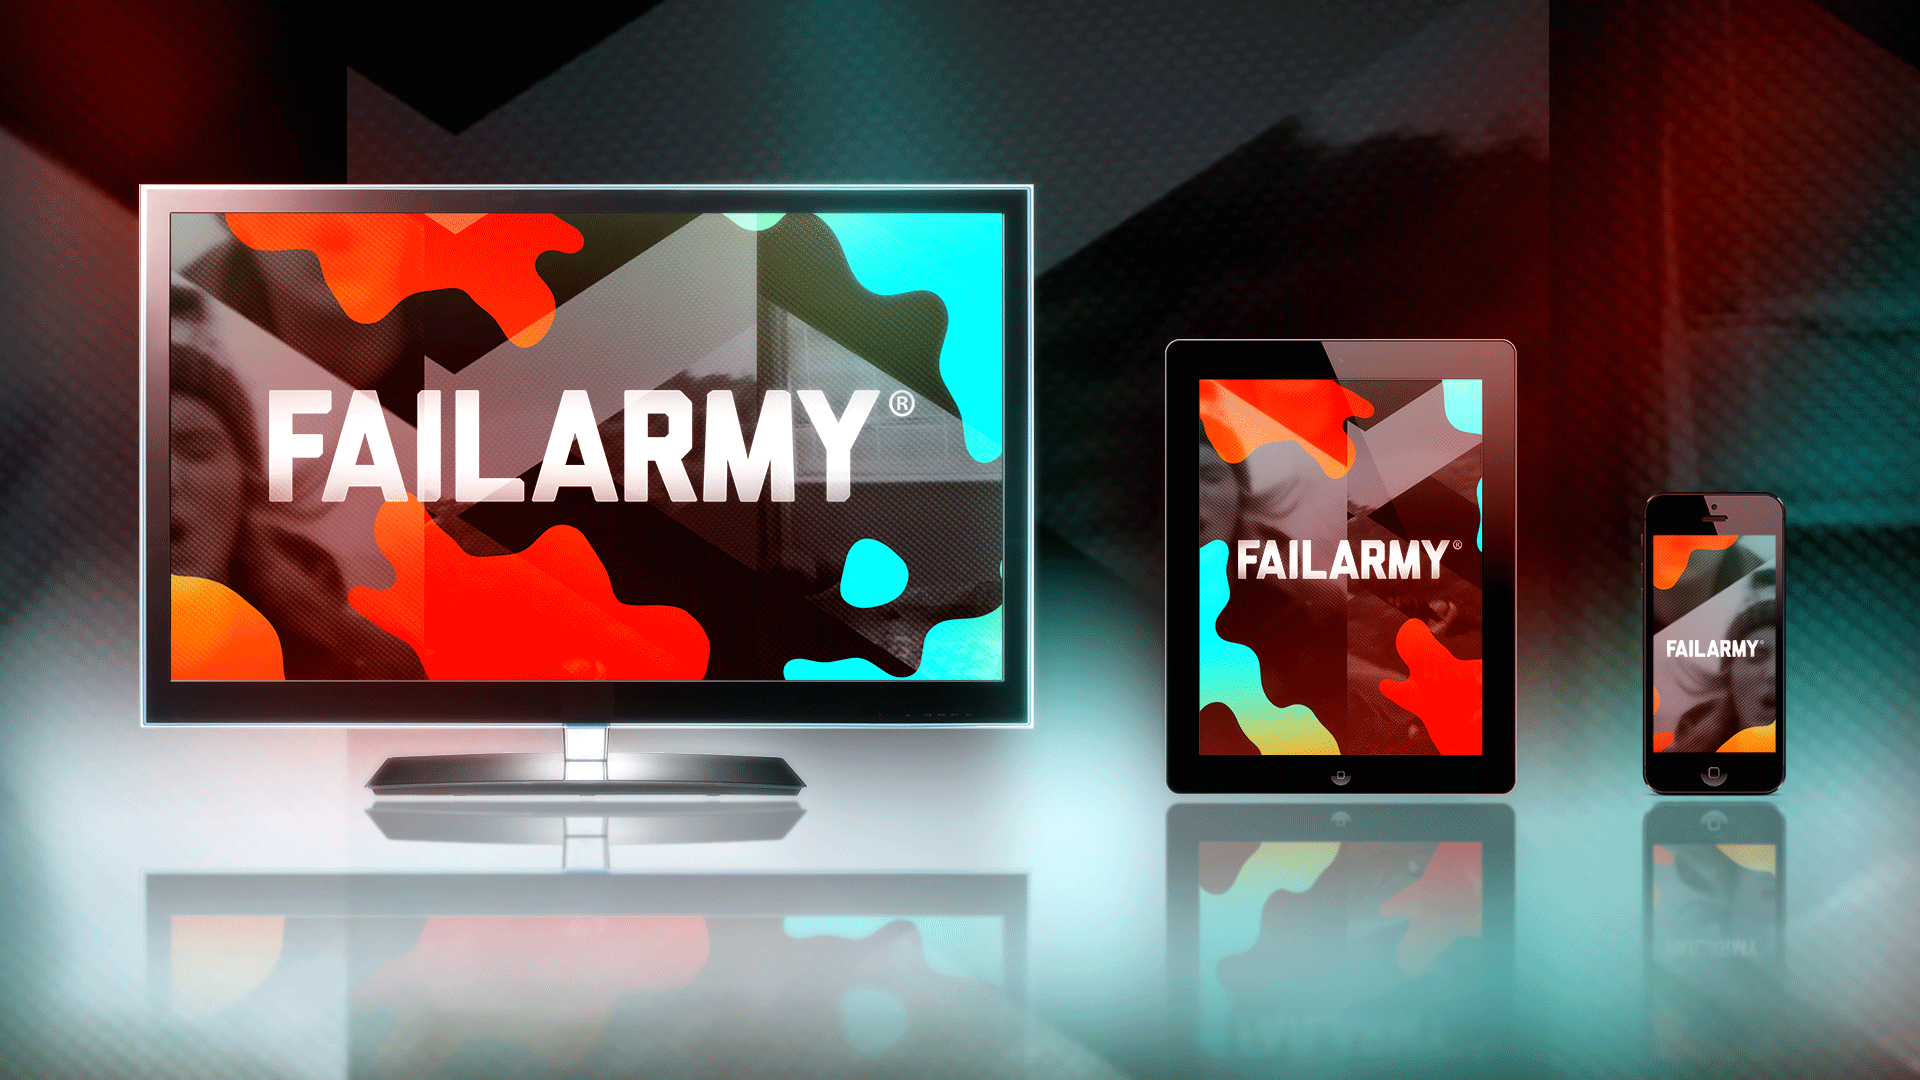 JUKIN MEDIA ANNOUNCES NEW PROGRAMING PARTNERS FOR FAILARMYTV